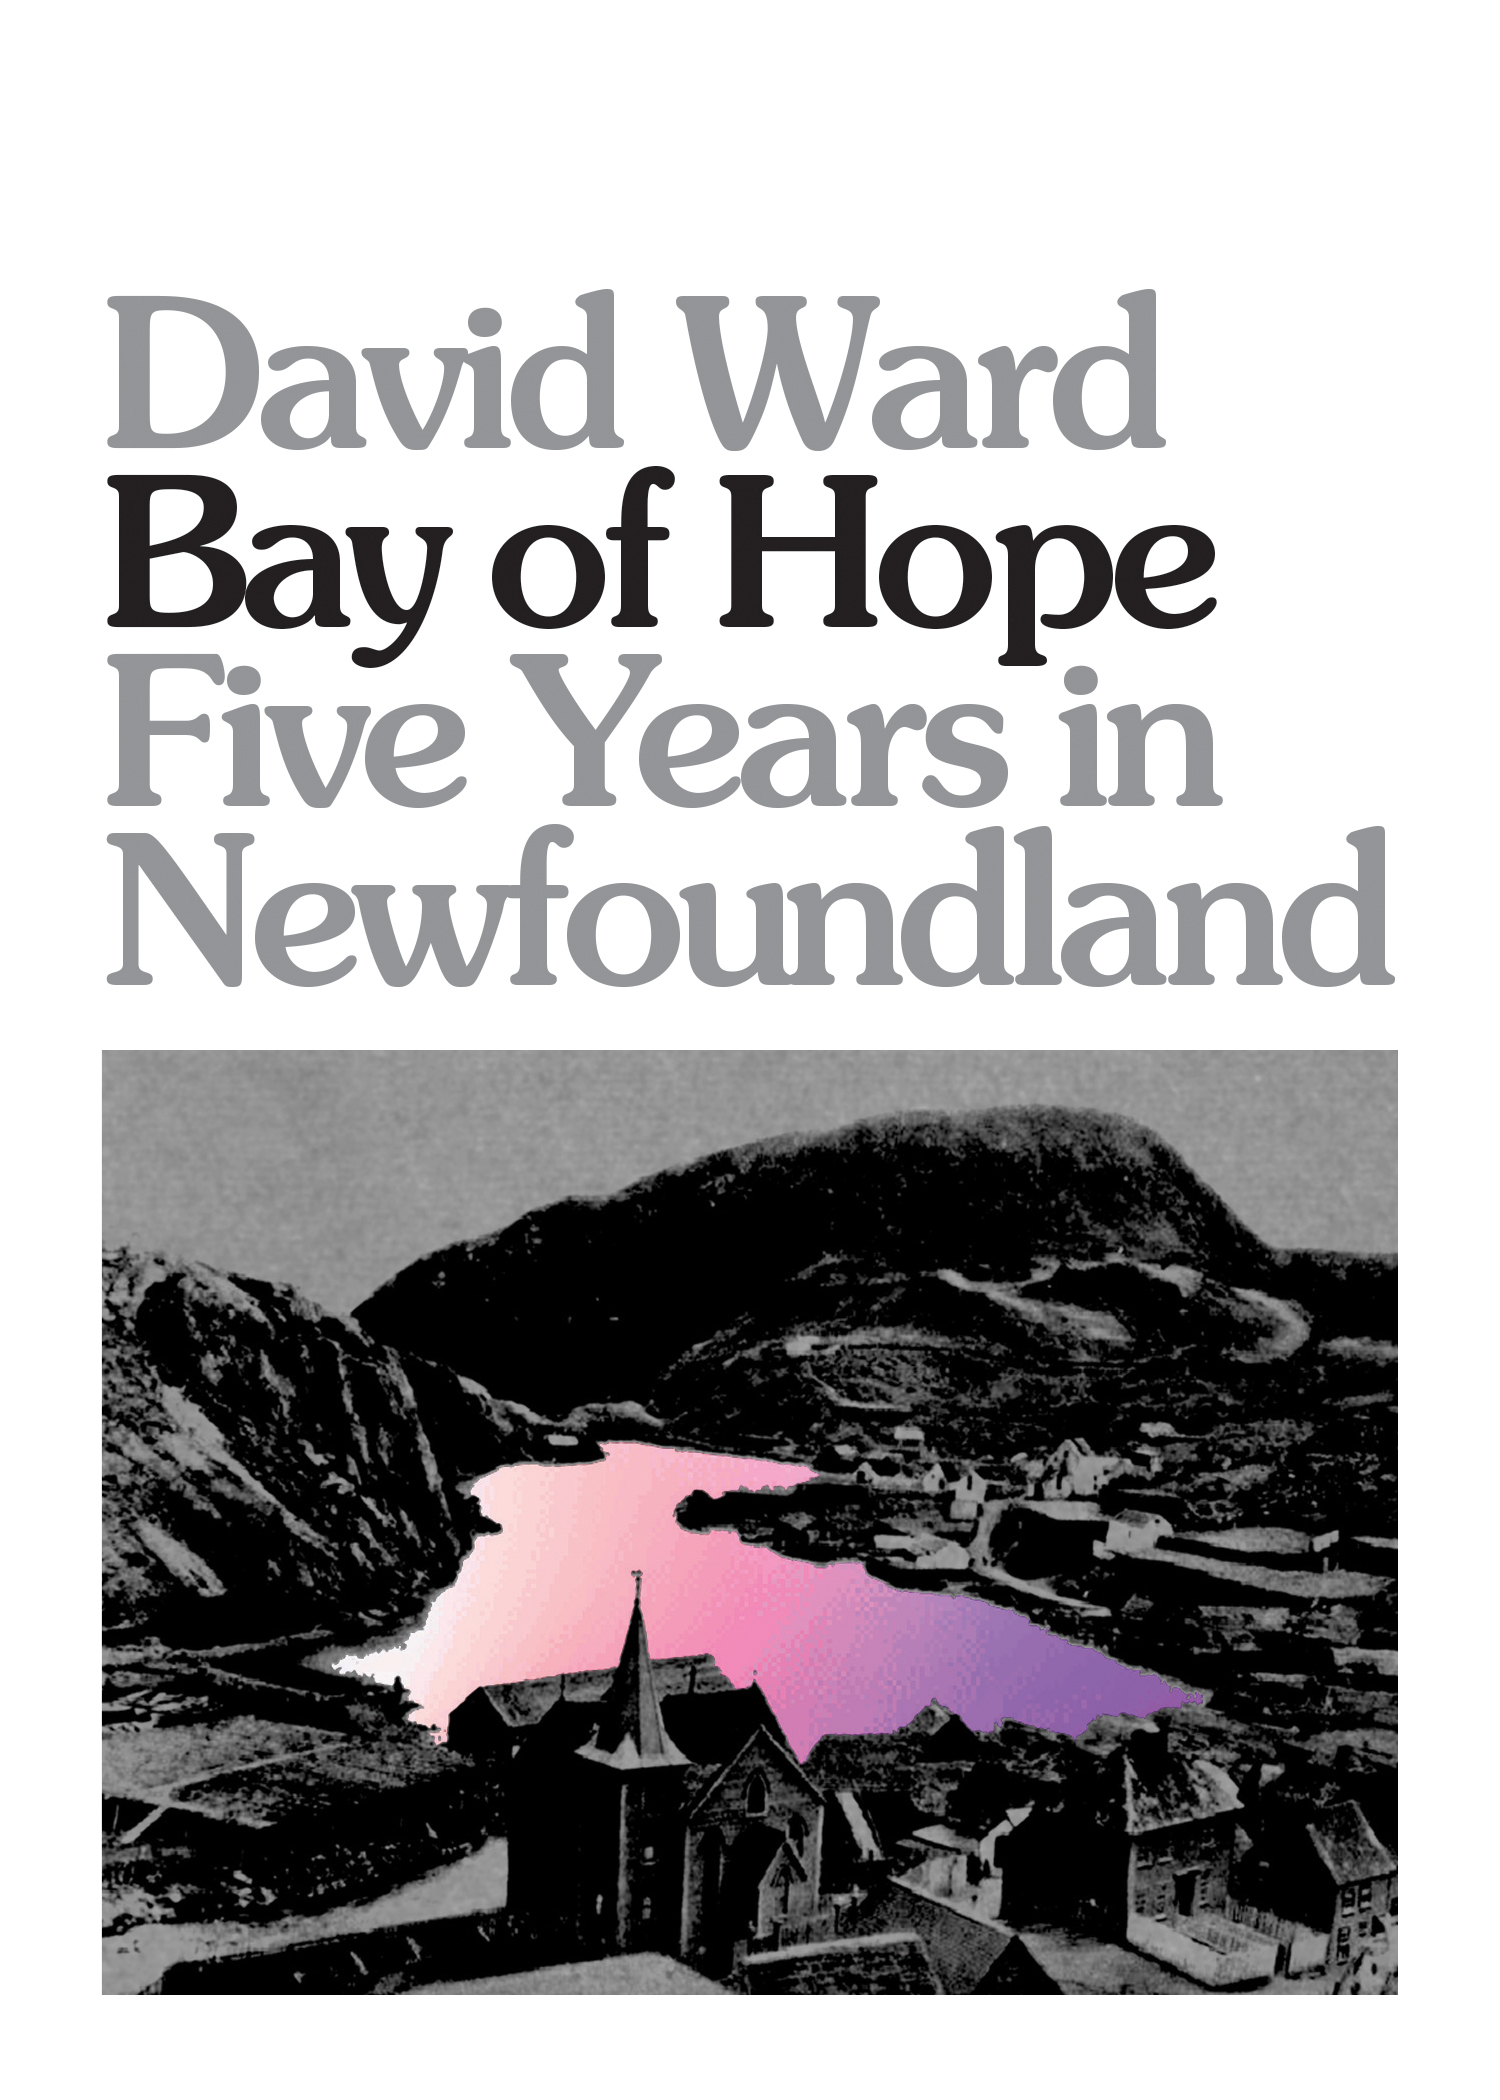 Bay of Hope Five Years in Newfoundland